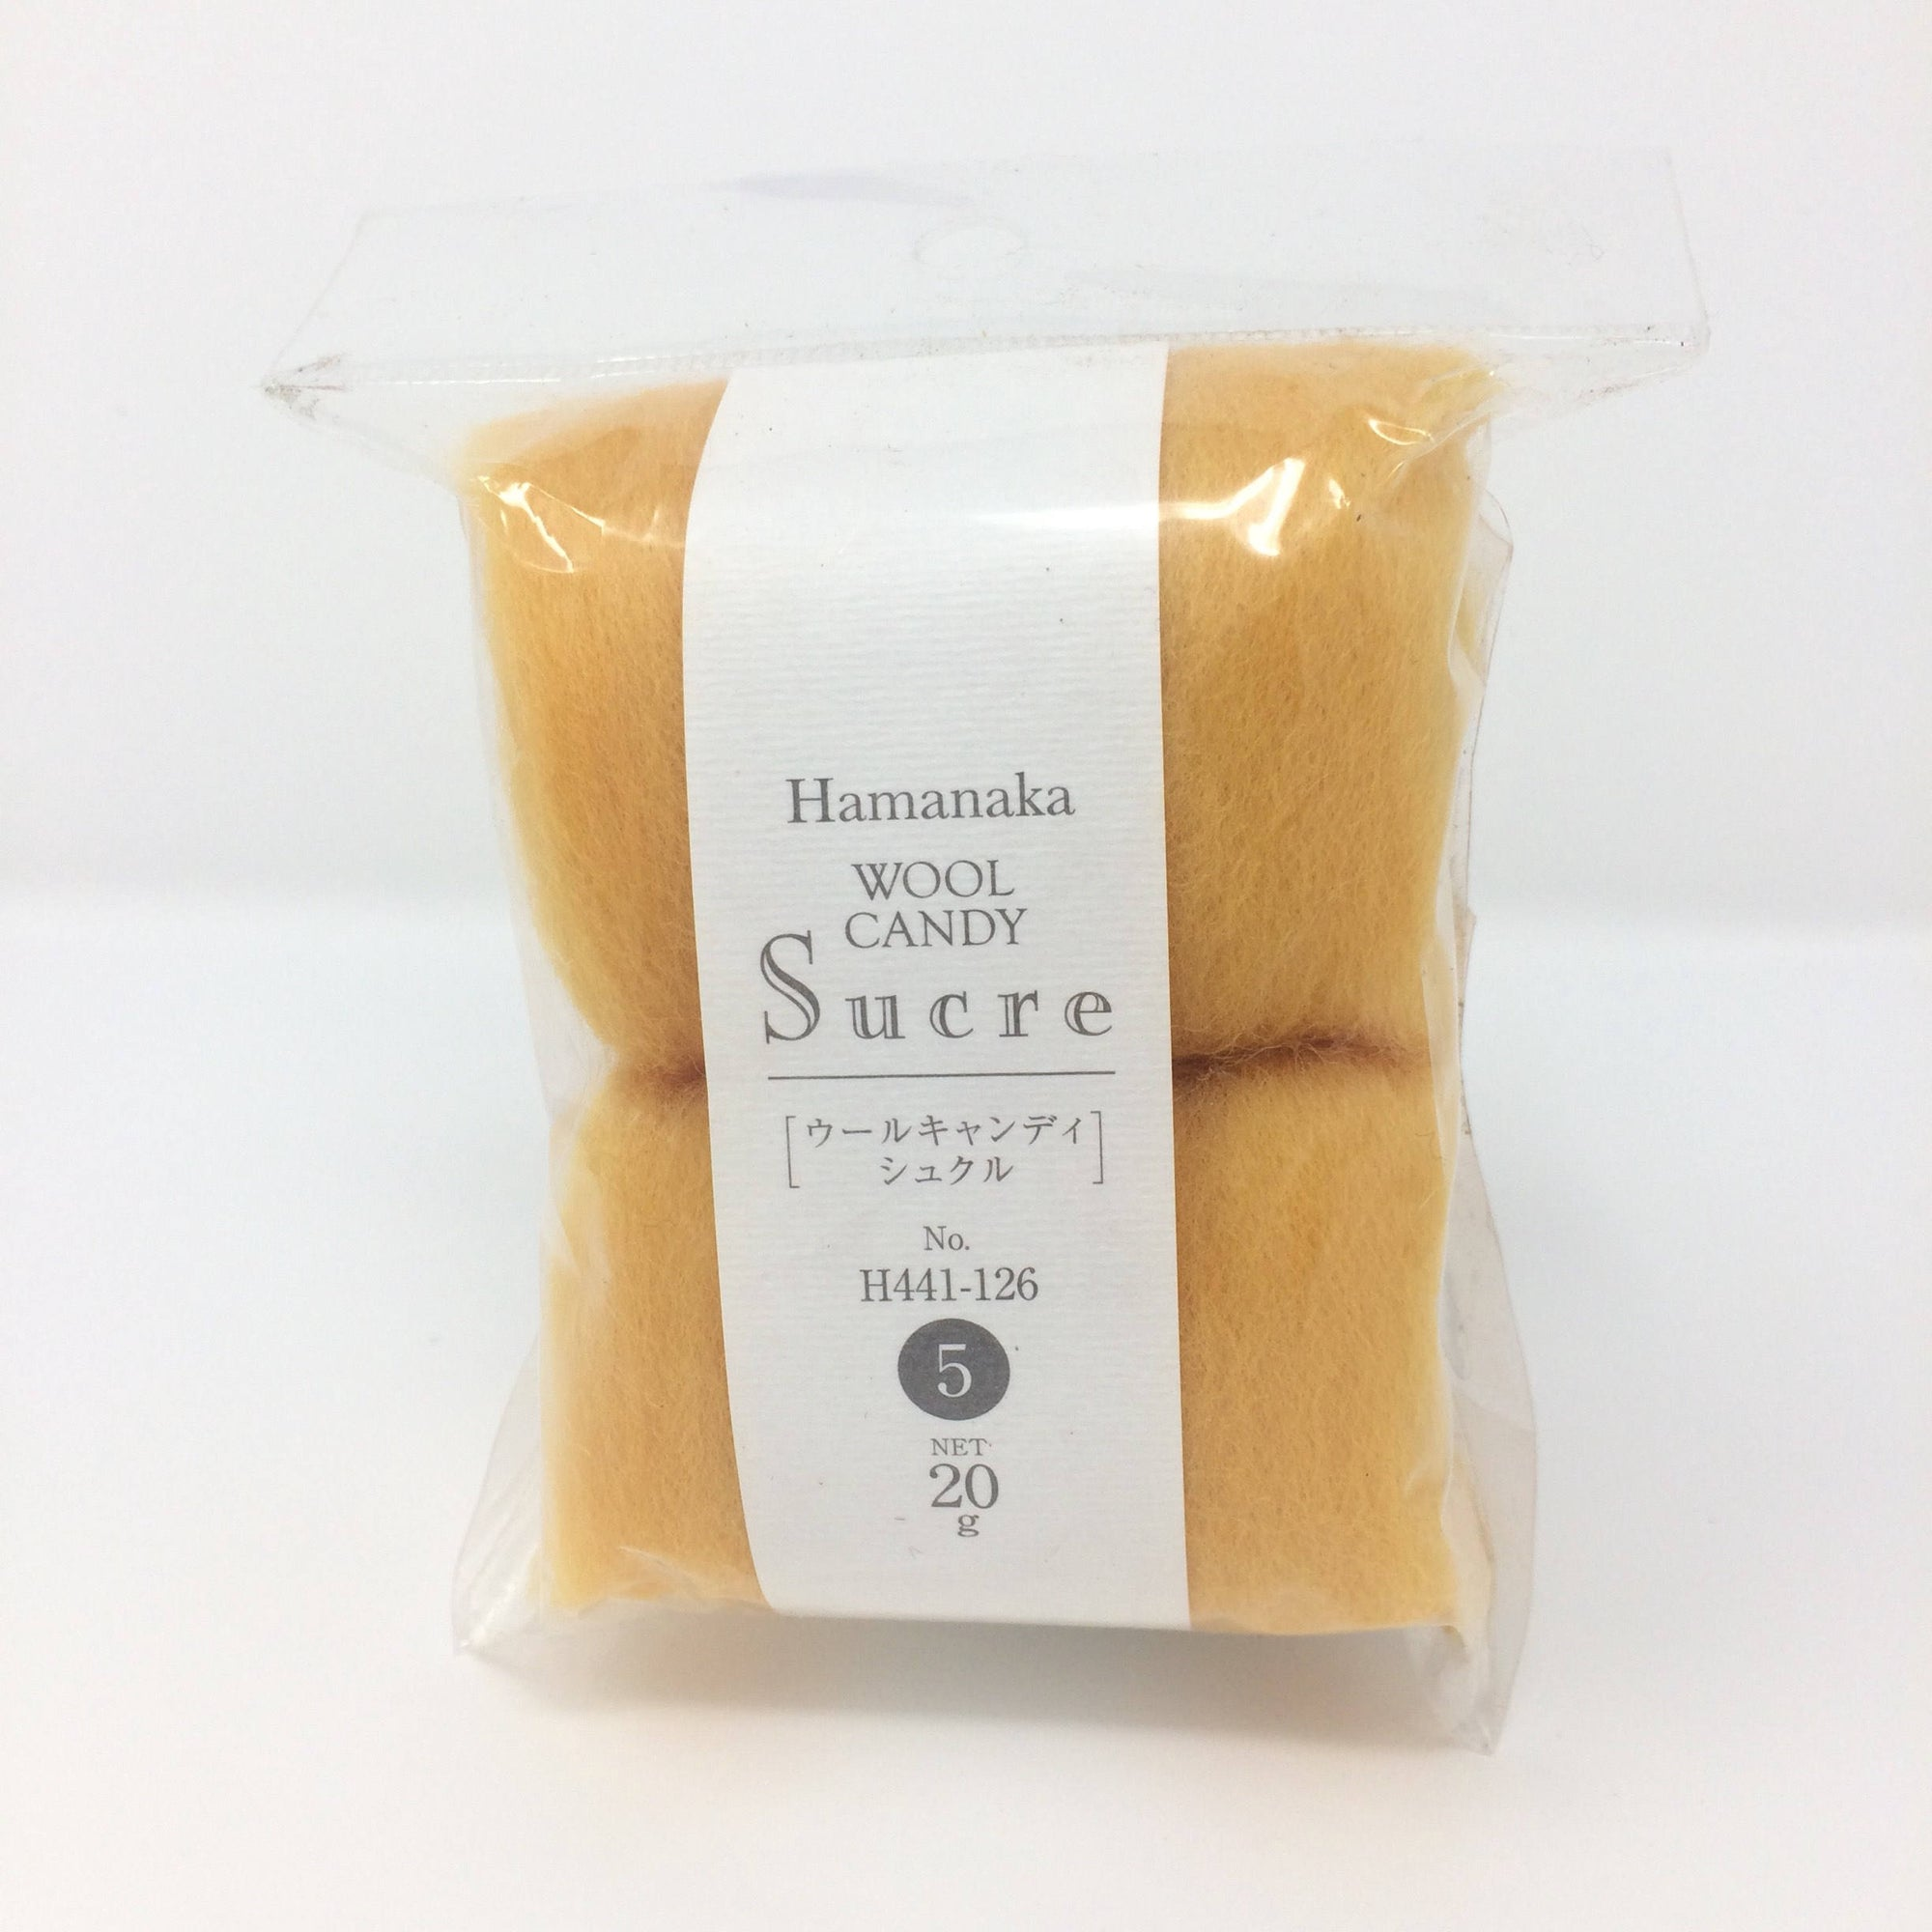 Hamanaka Wool Candy Sucre - Orange 20g